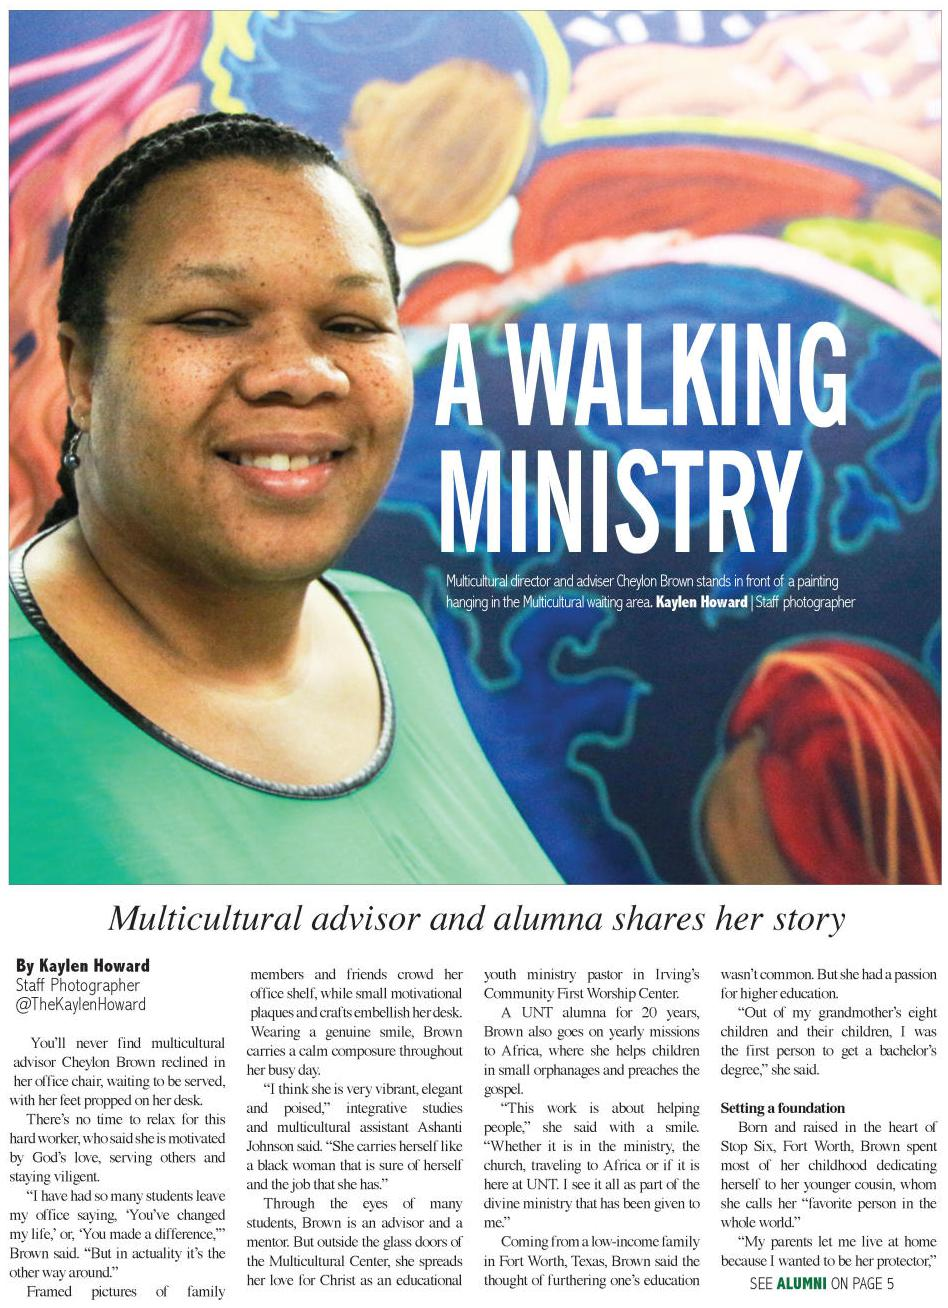 A newspaper page. At the top, covering most of it, is a picture of a woman smiling in front of a colorful painted background. Over it is the text A Walking Ministry. Under the picture is the title of the article, followed by four columns of text.